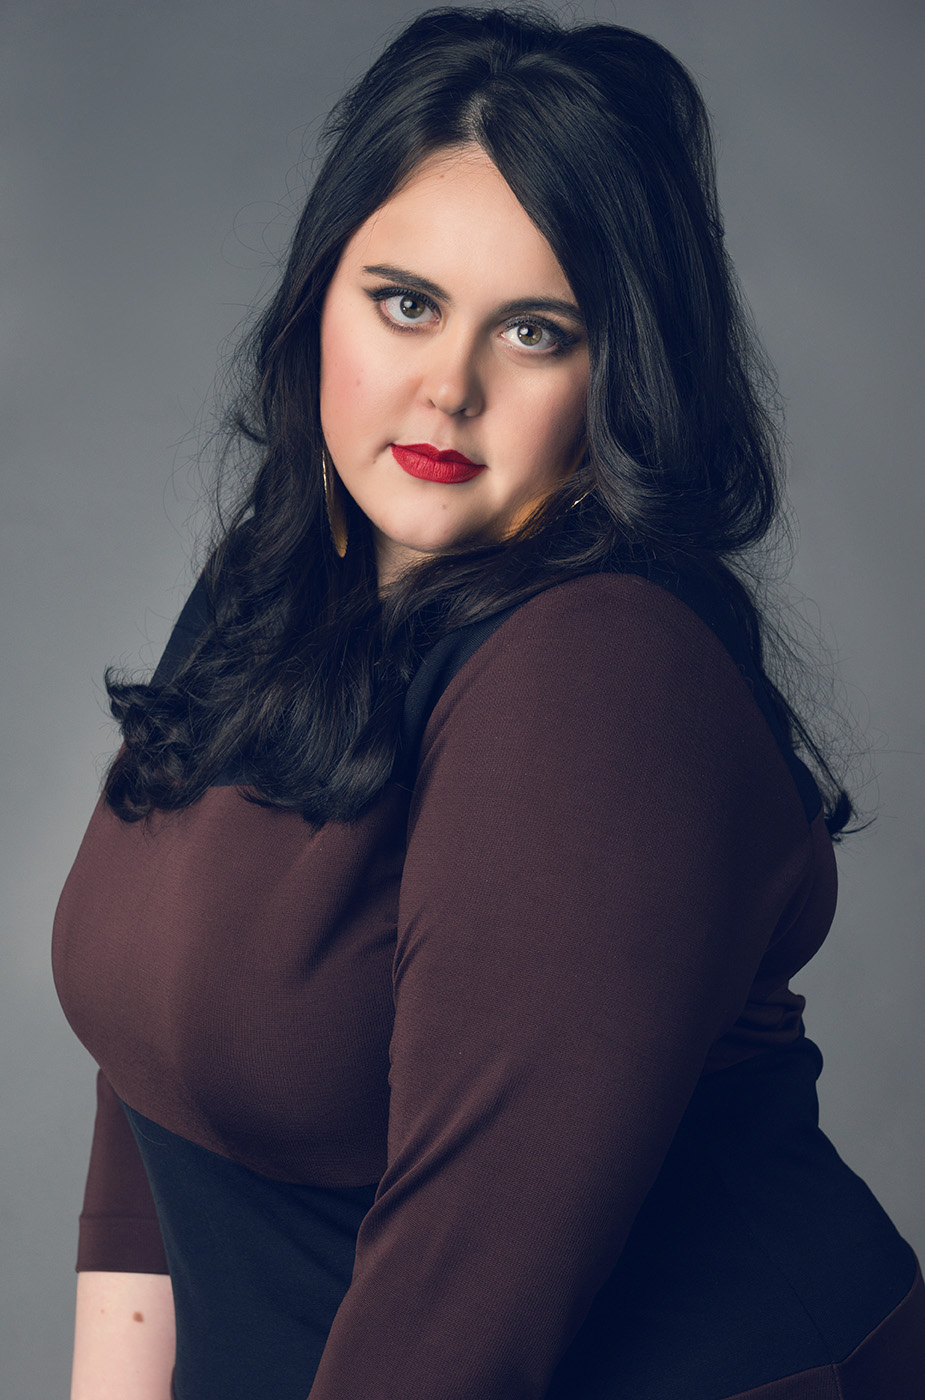 Sharon Rooney nudes (18 photos) Young, 2019, legs